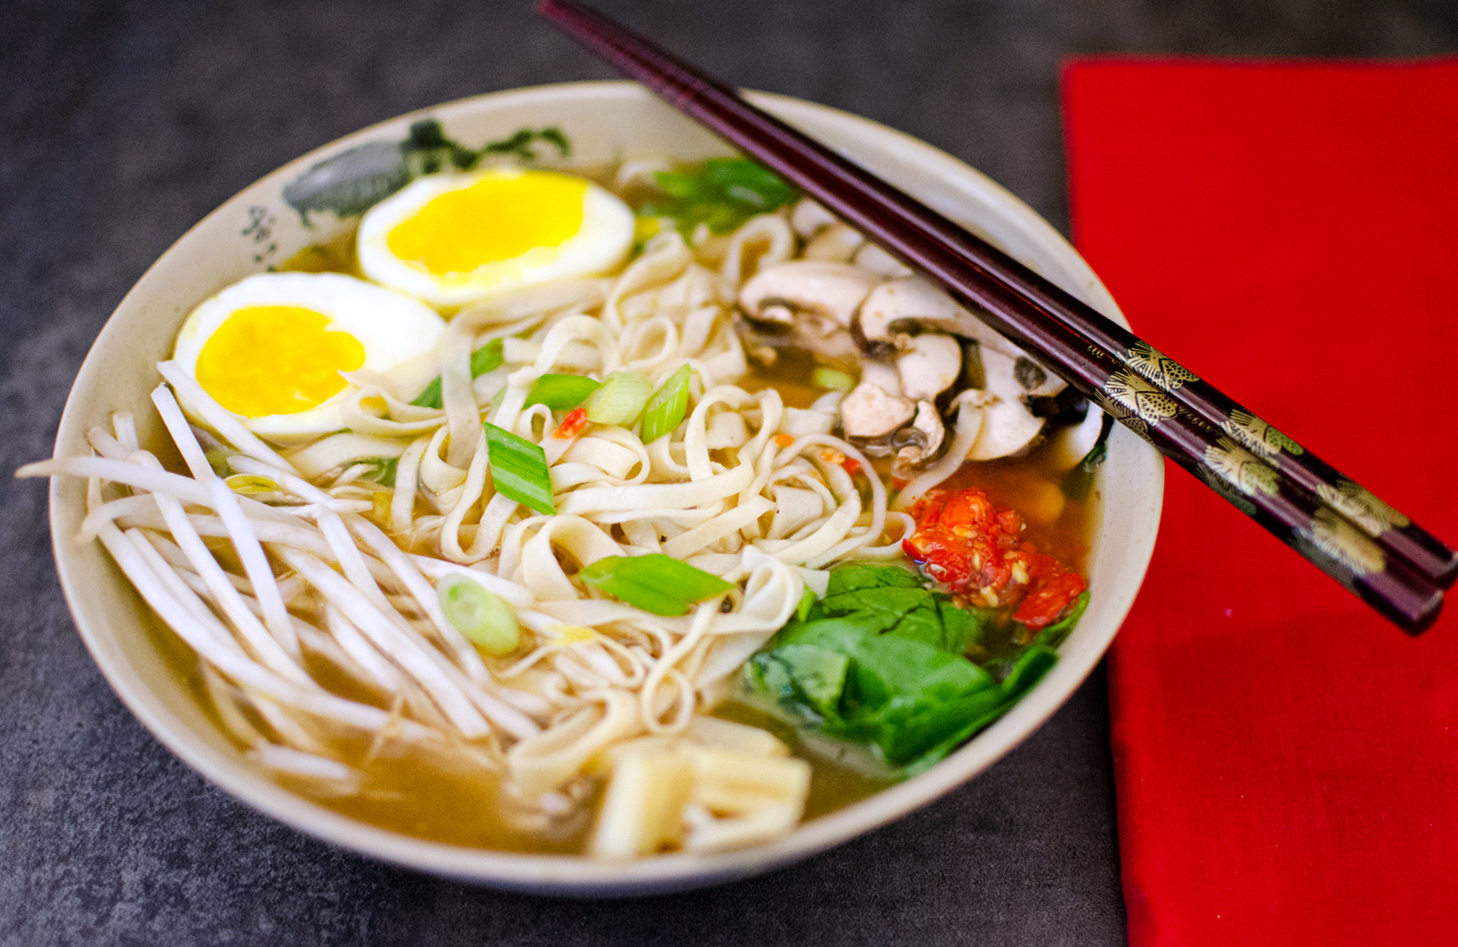 The Best Miso Ramen Noodle Soup Recipe from Scratch - AstroEater